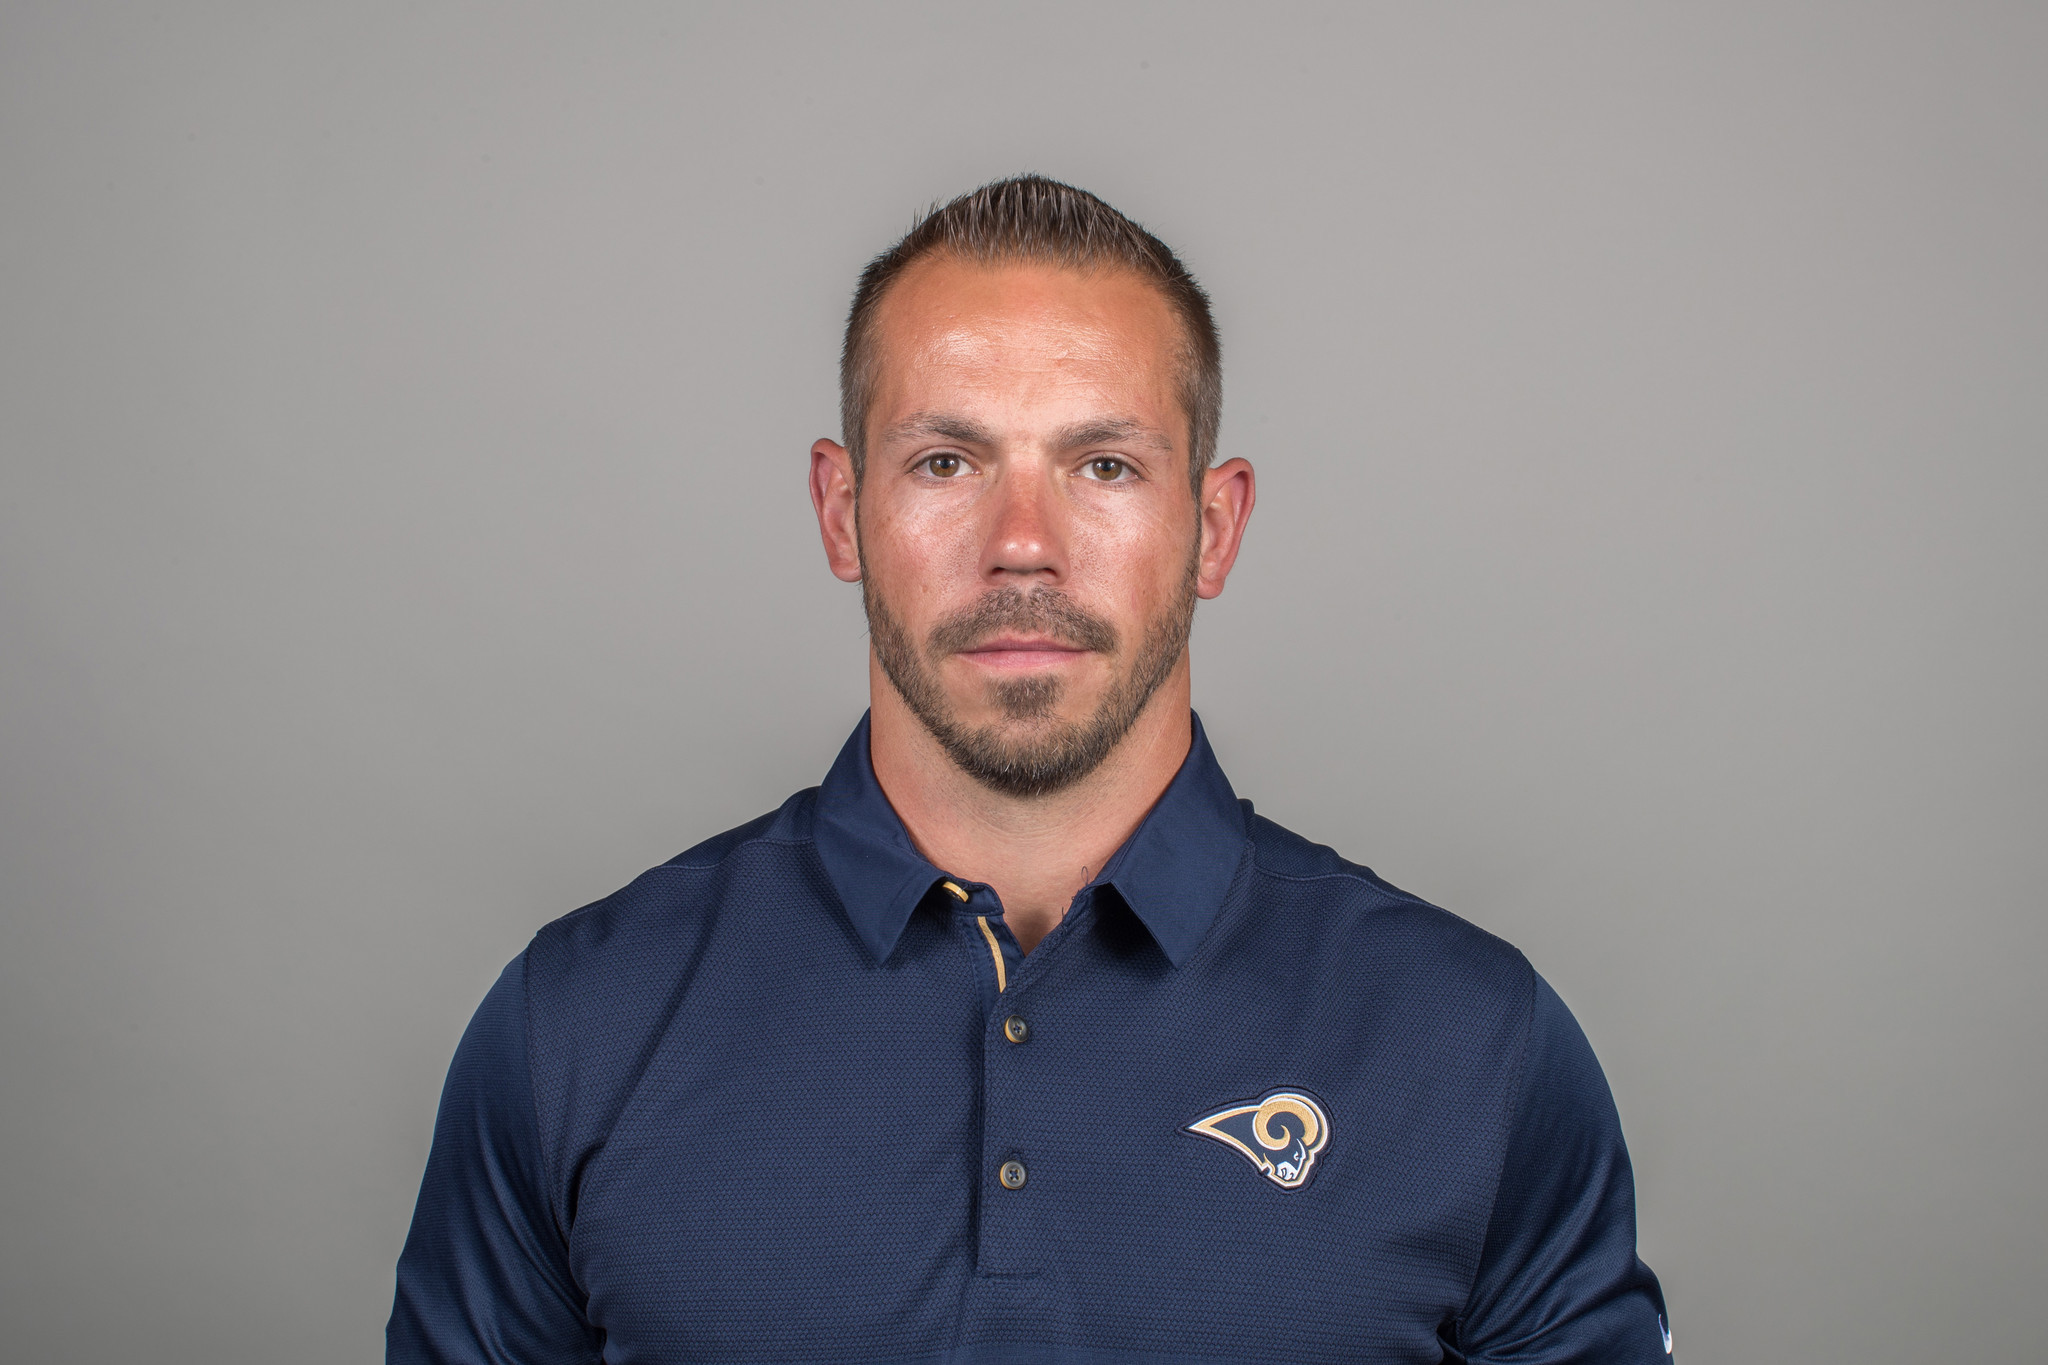 Ted Rath of the Los Angeles Rams headshot, Thursday, April 26, 2018, in Thousand Oaks, CA. (Jeff Lew